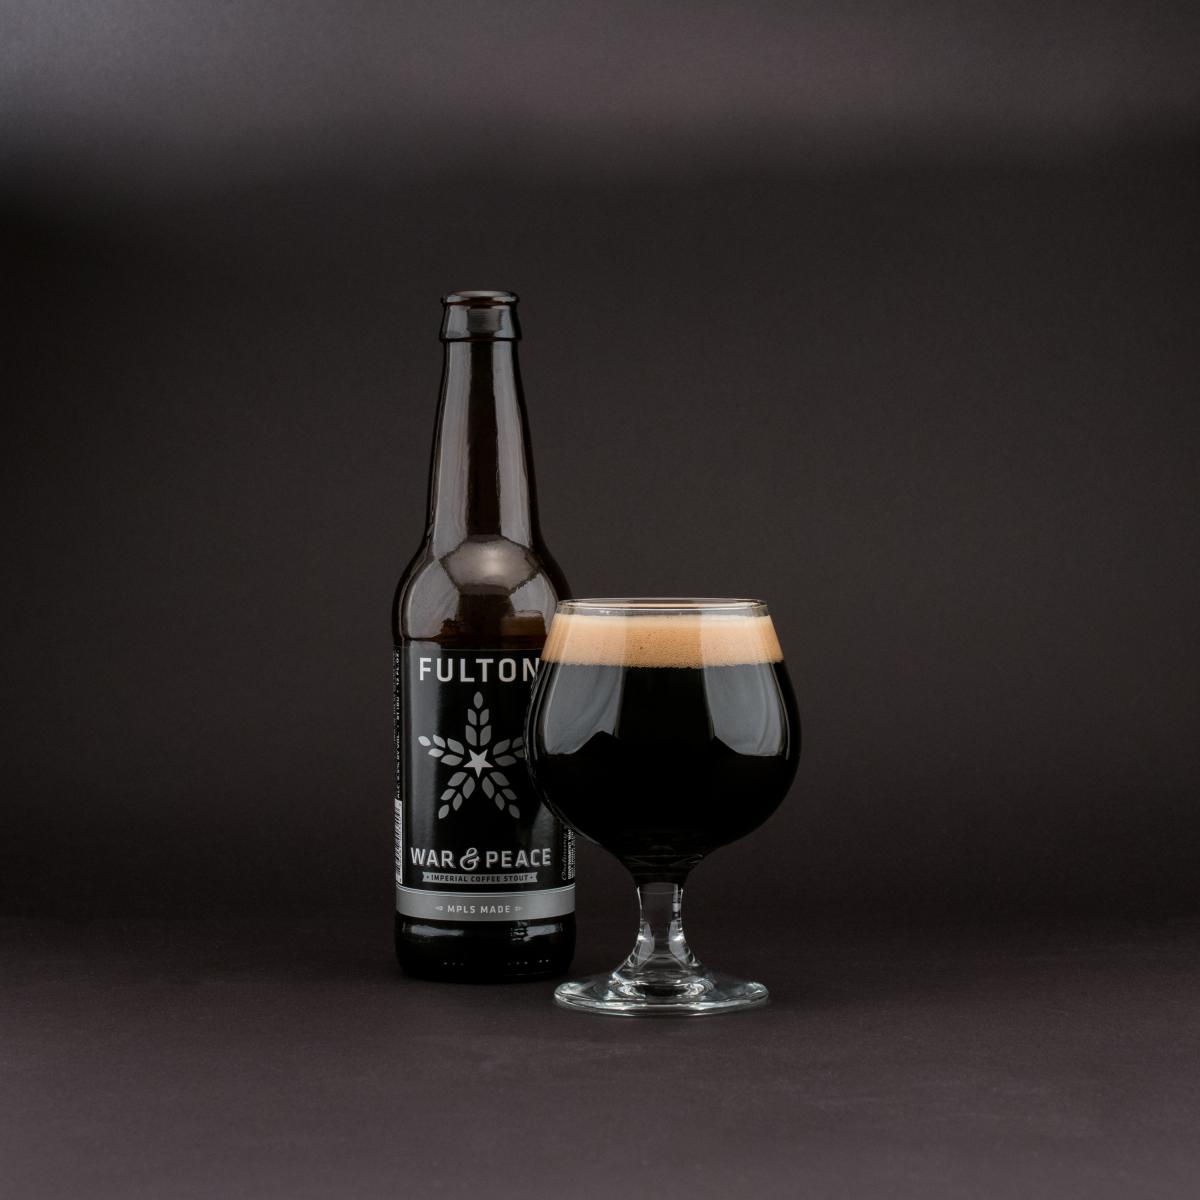 Fulton's War & Peace Imperial Coffee Stout